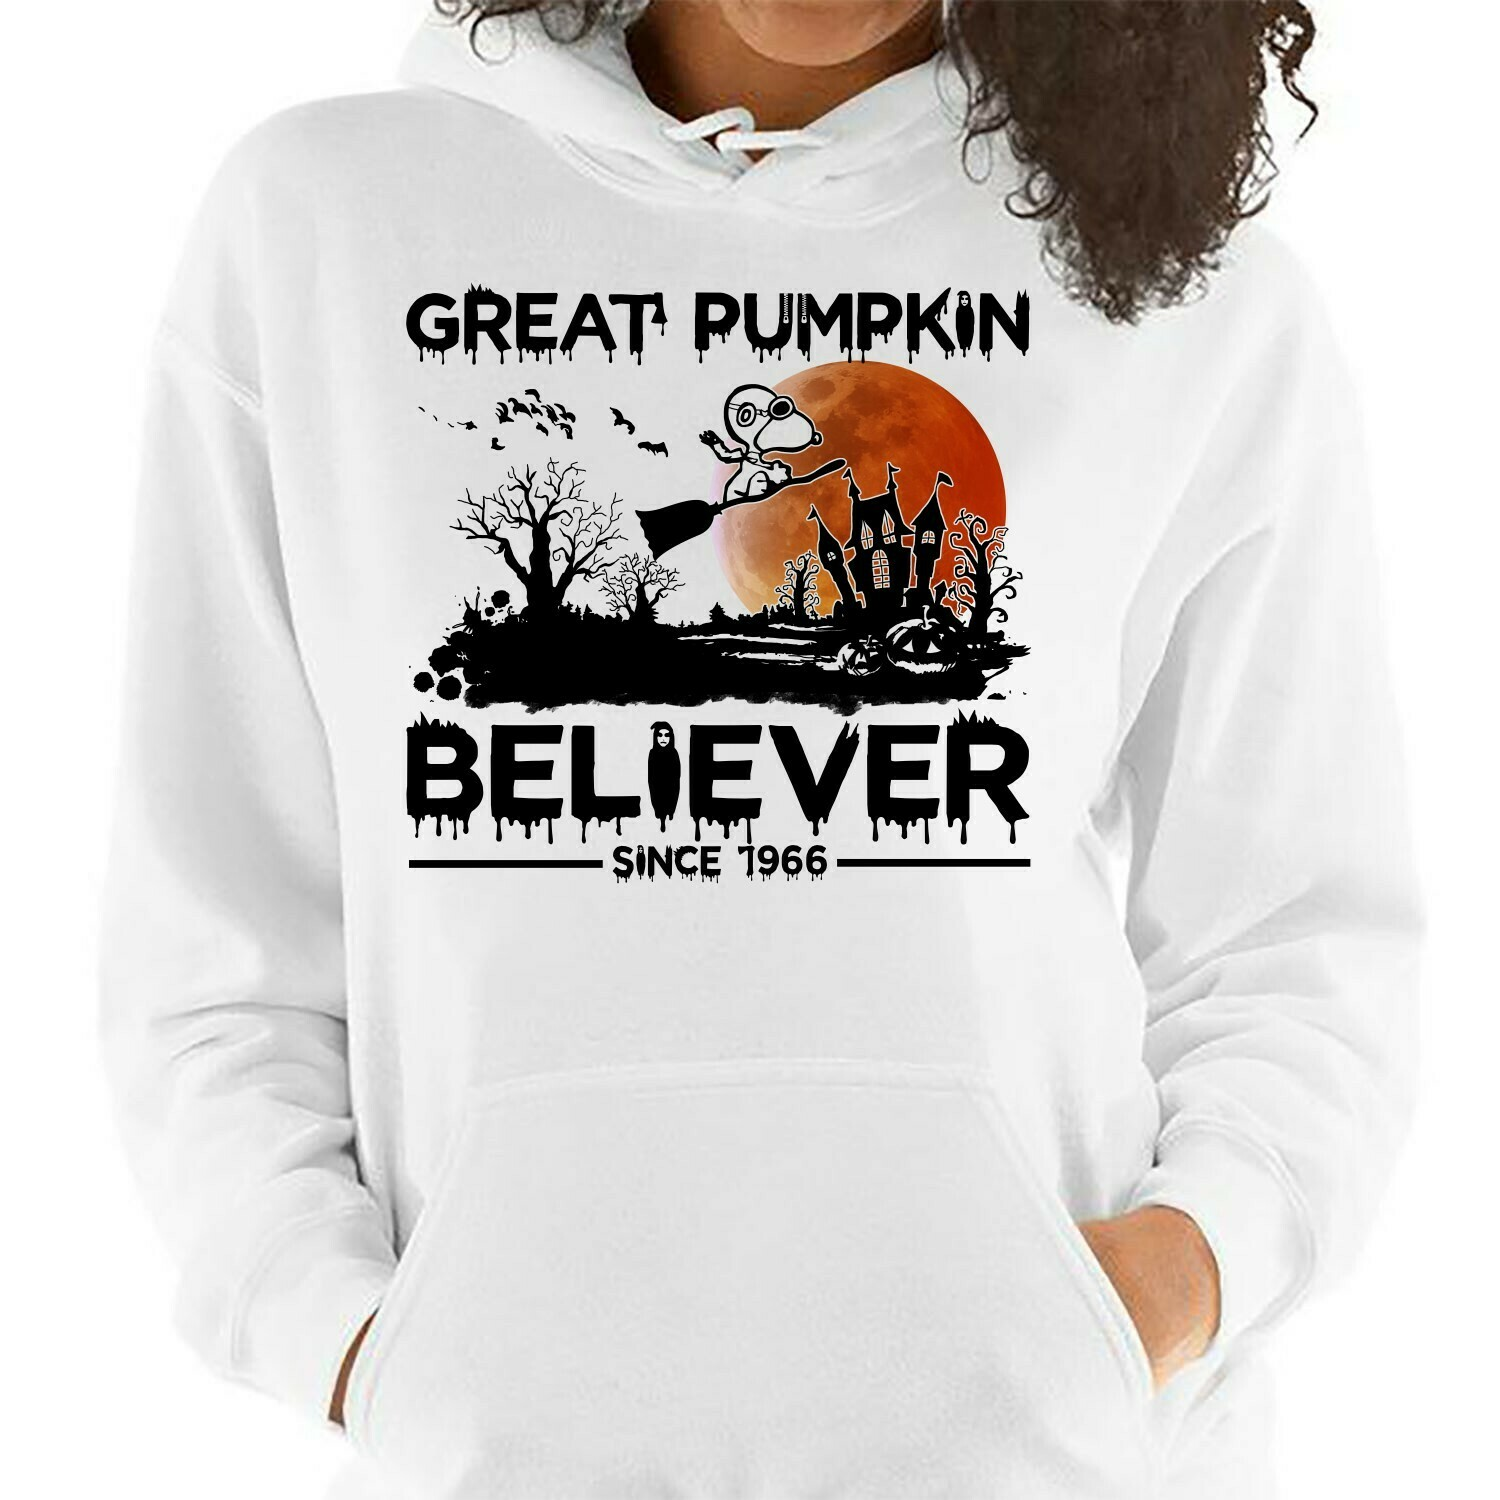 Snoopy Halloween Great Pumpkin Believe Since 1966,Snoopy Witch Halloween Costume,Ghost Bat Family Vacation Gifts T-Shirt Long Sleeve Sweatshirt Hoodie Jolly Family Gifts